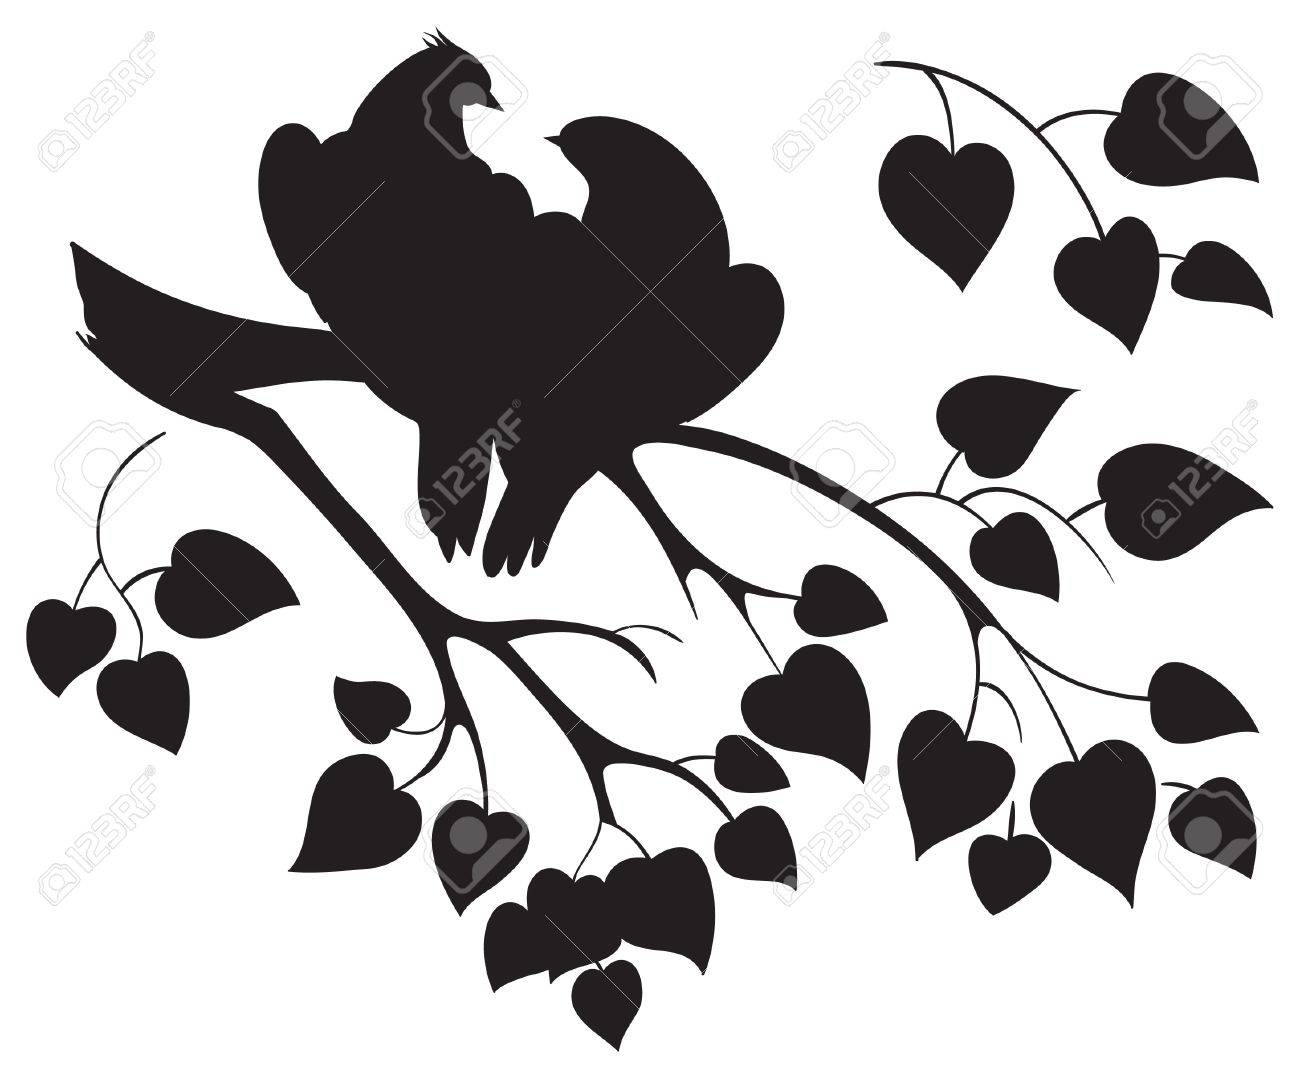 Vector silhouette of love birds sitting on branch tree - 12301743